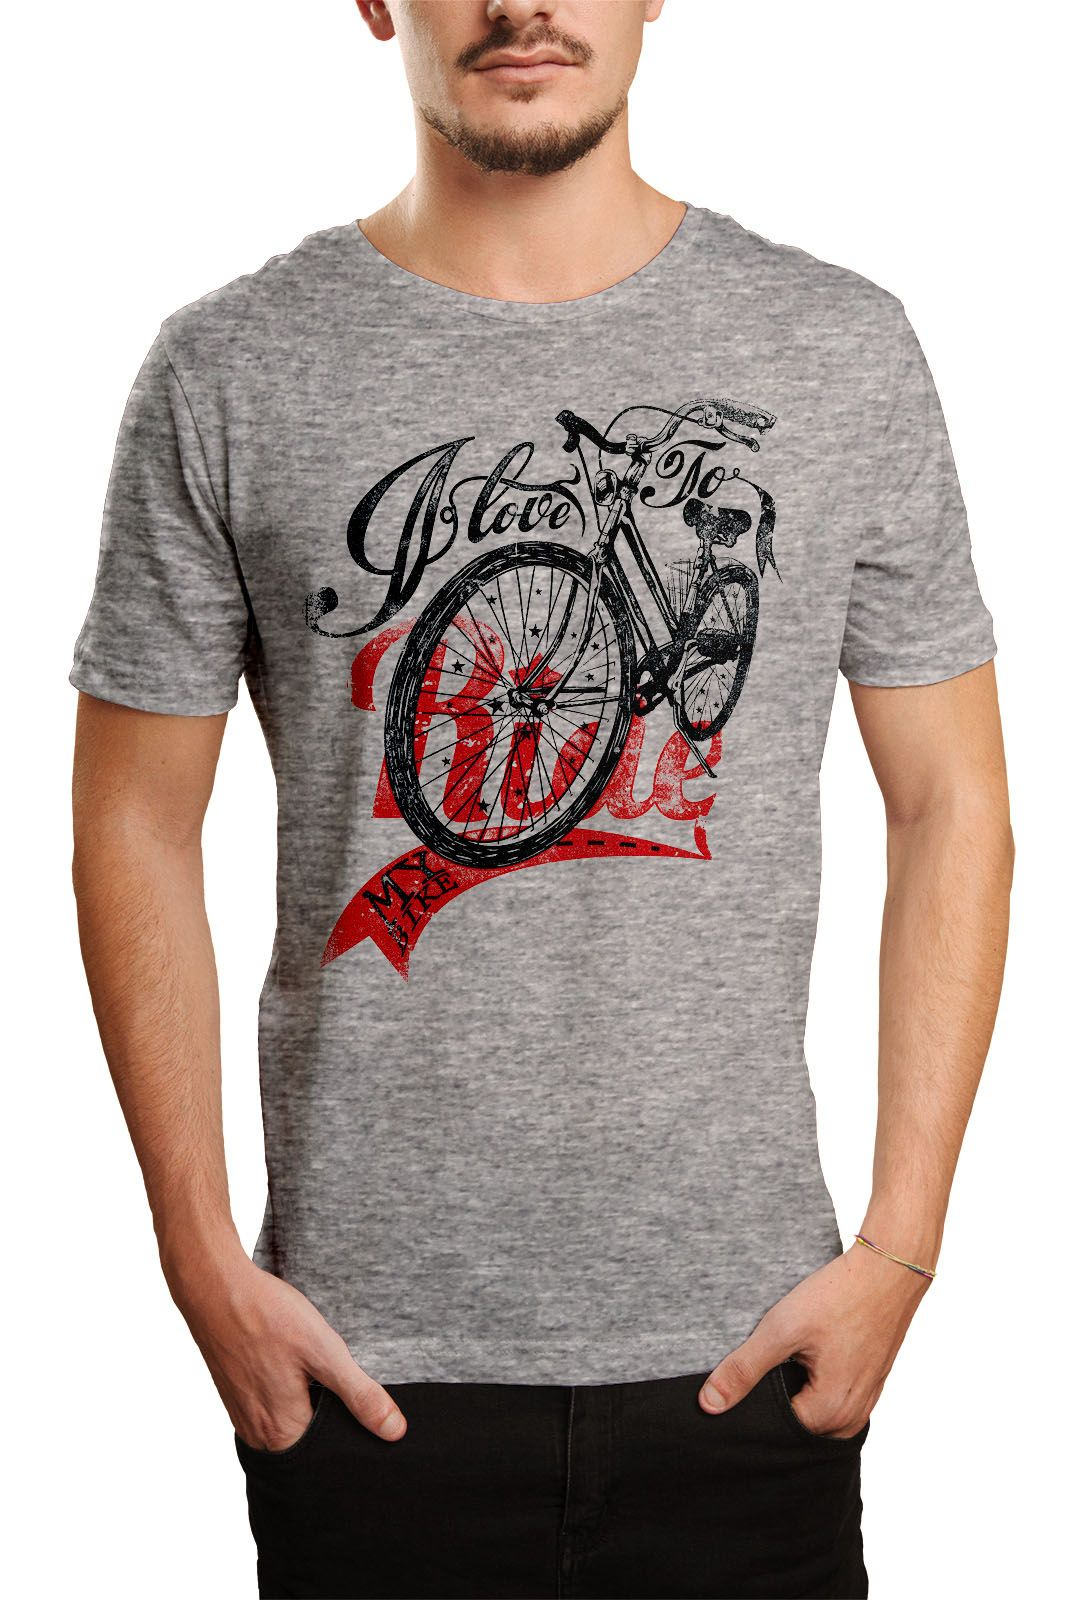 Camiseta HShop Love My Bike - Cinza Mescla  - HShop